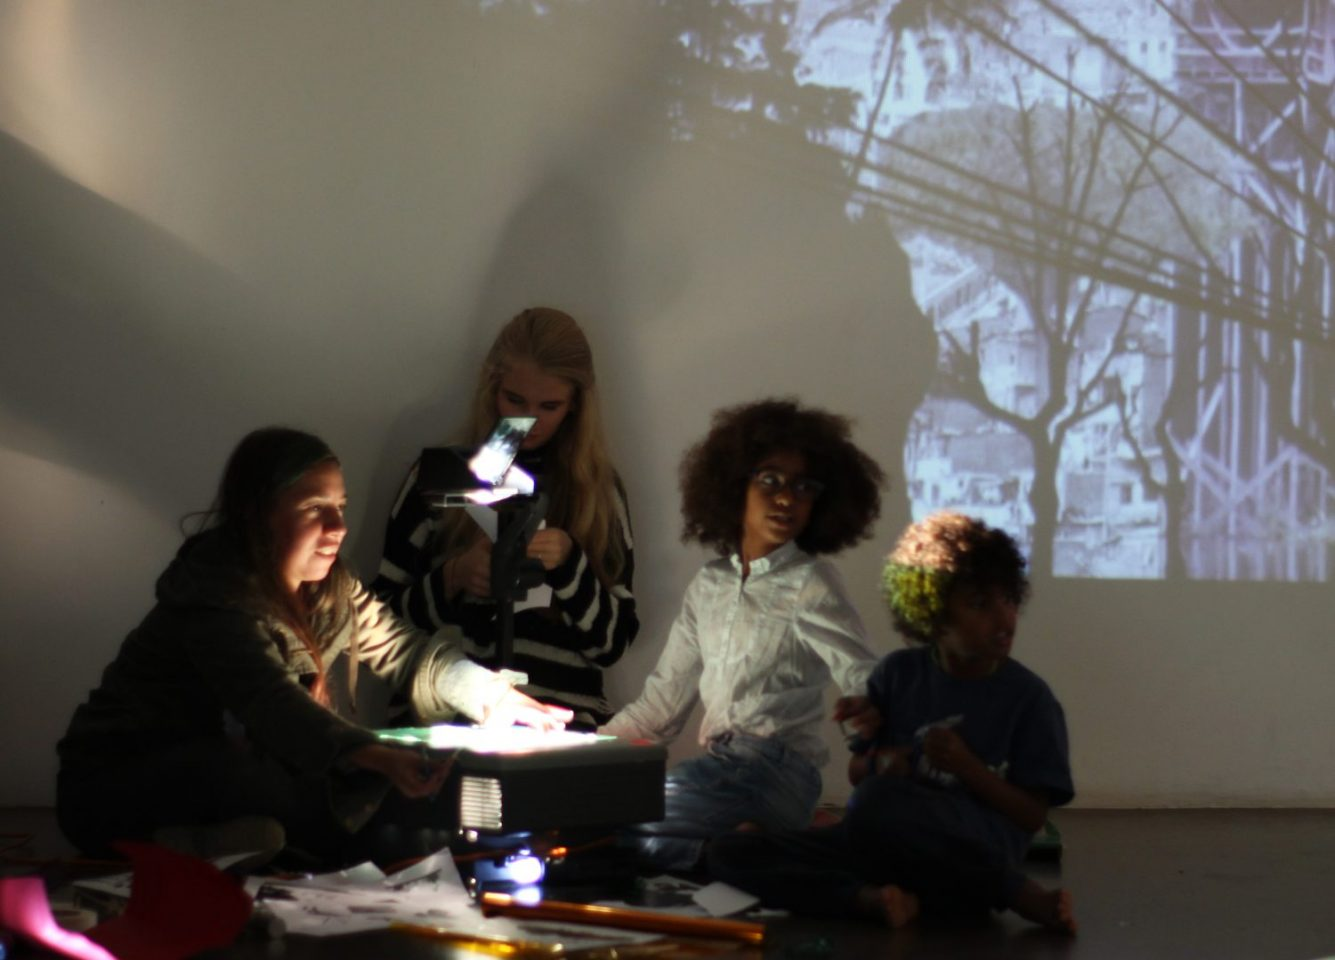 Children in the Clore Studio with a projection behind them